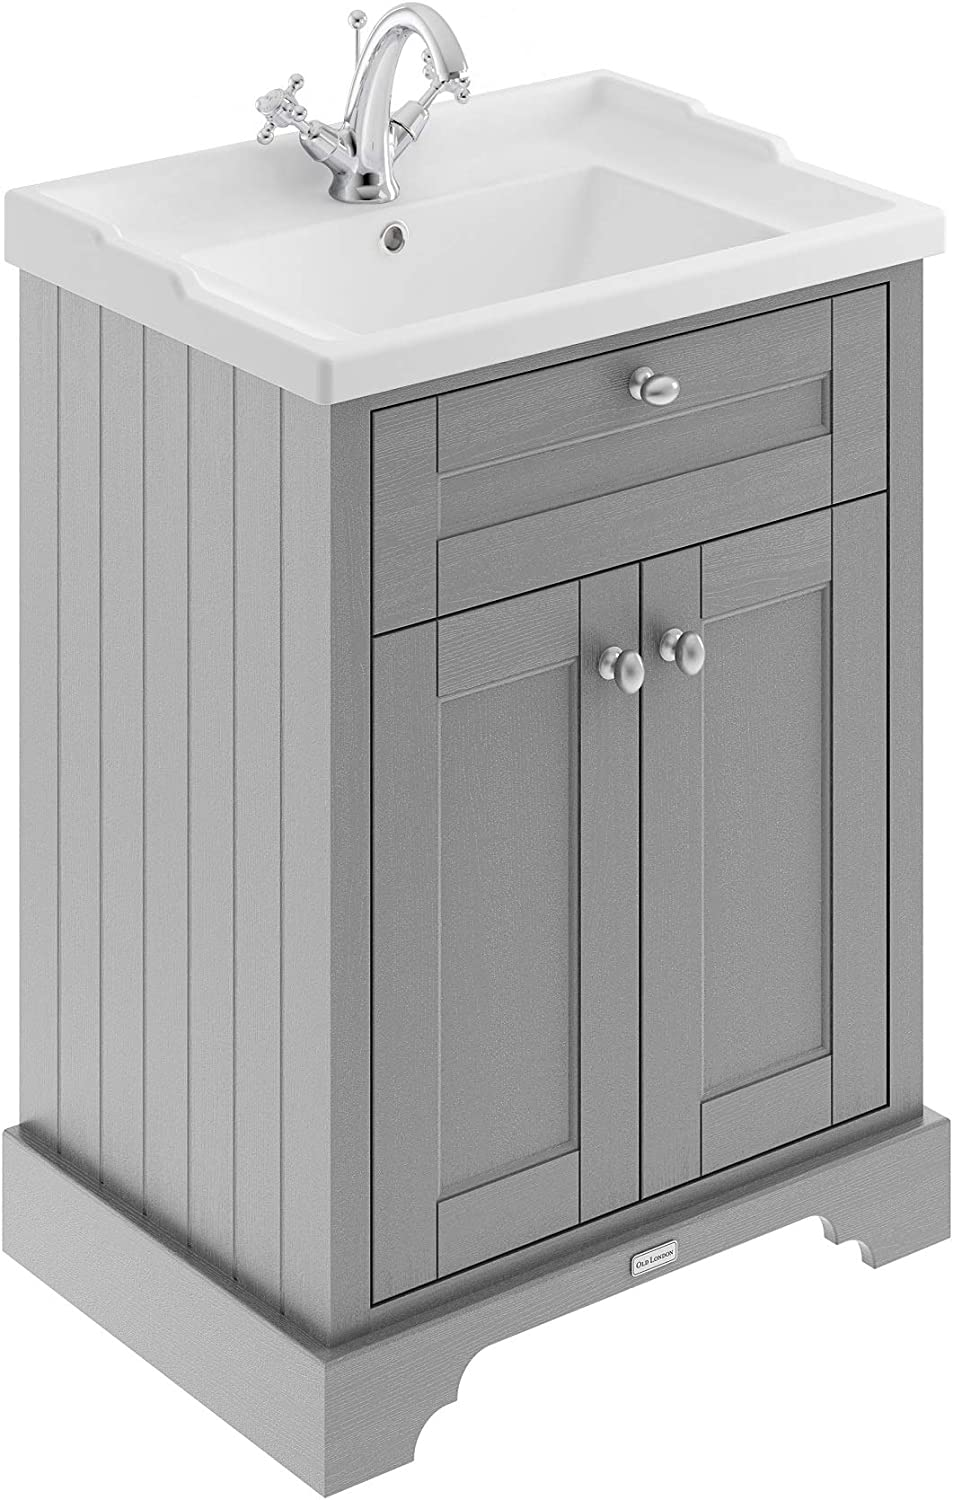 Timeless Sand Old London Hudson Reed LOF409 ǀ Traditional Cloakroom Bathroom Floor Standing Corner Vanity Basin Unit with 1 Tap Hole Ceramic Sink 595mm x 850mm 595mm x 850mm x 450mm